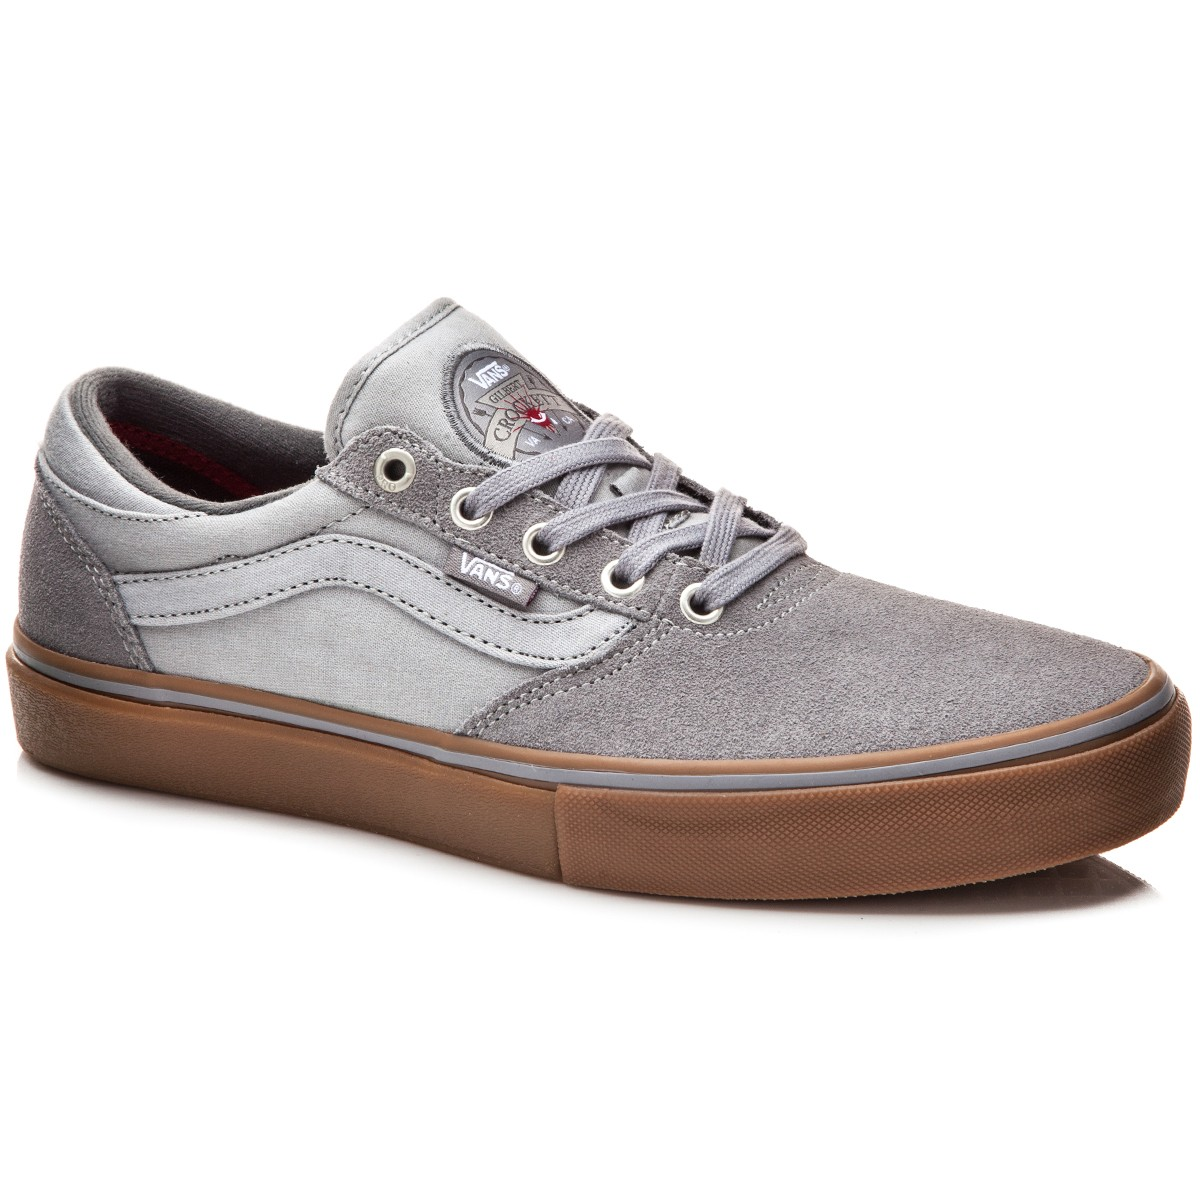 Vans Gilbert Crockett Pro Shoes - Chambray Grey/Gum